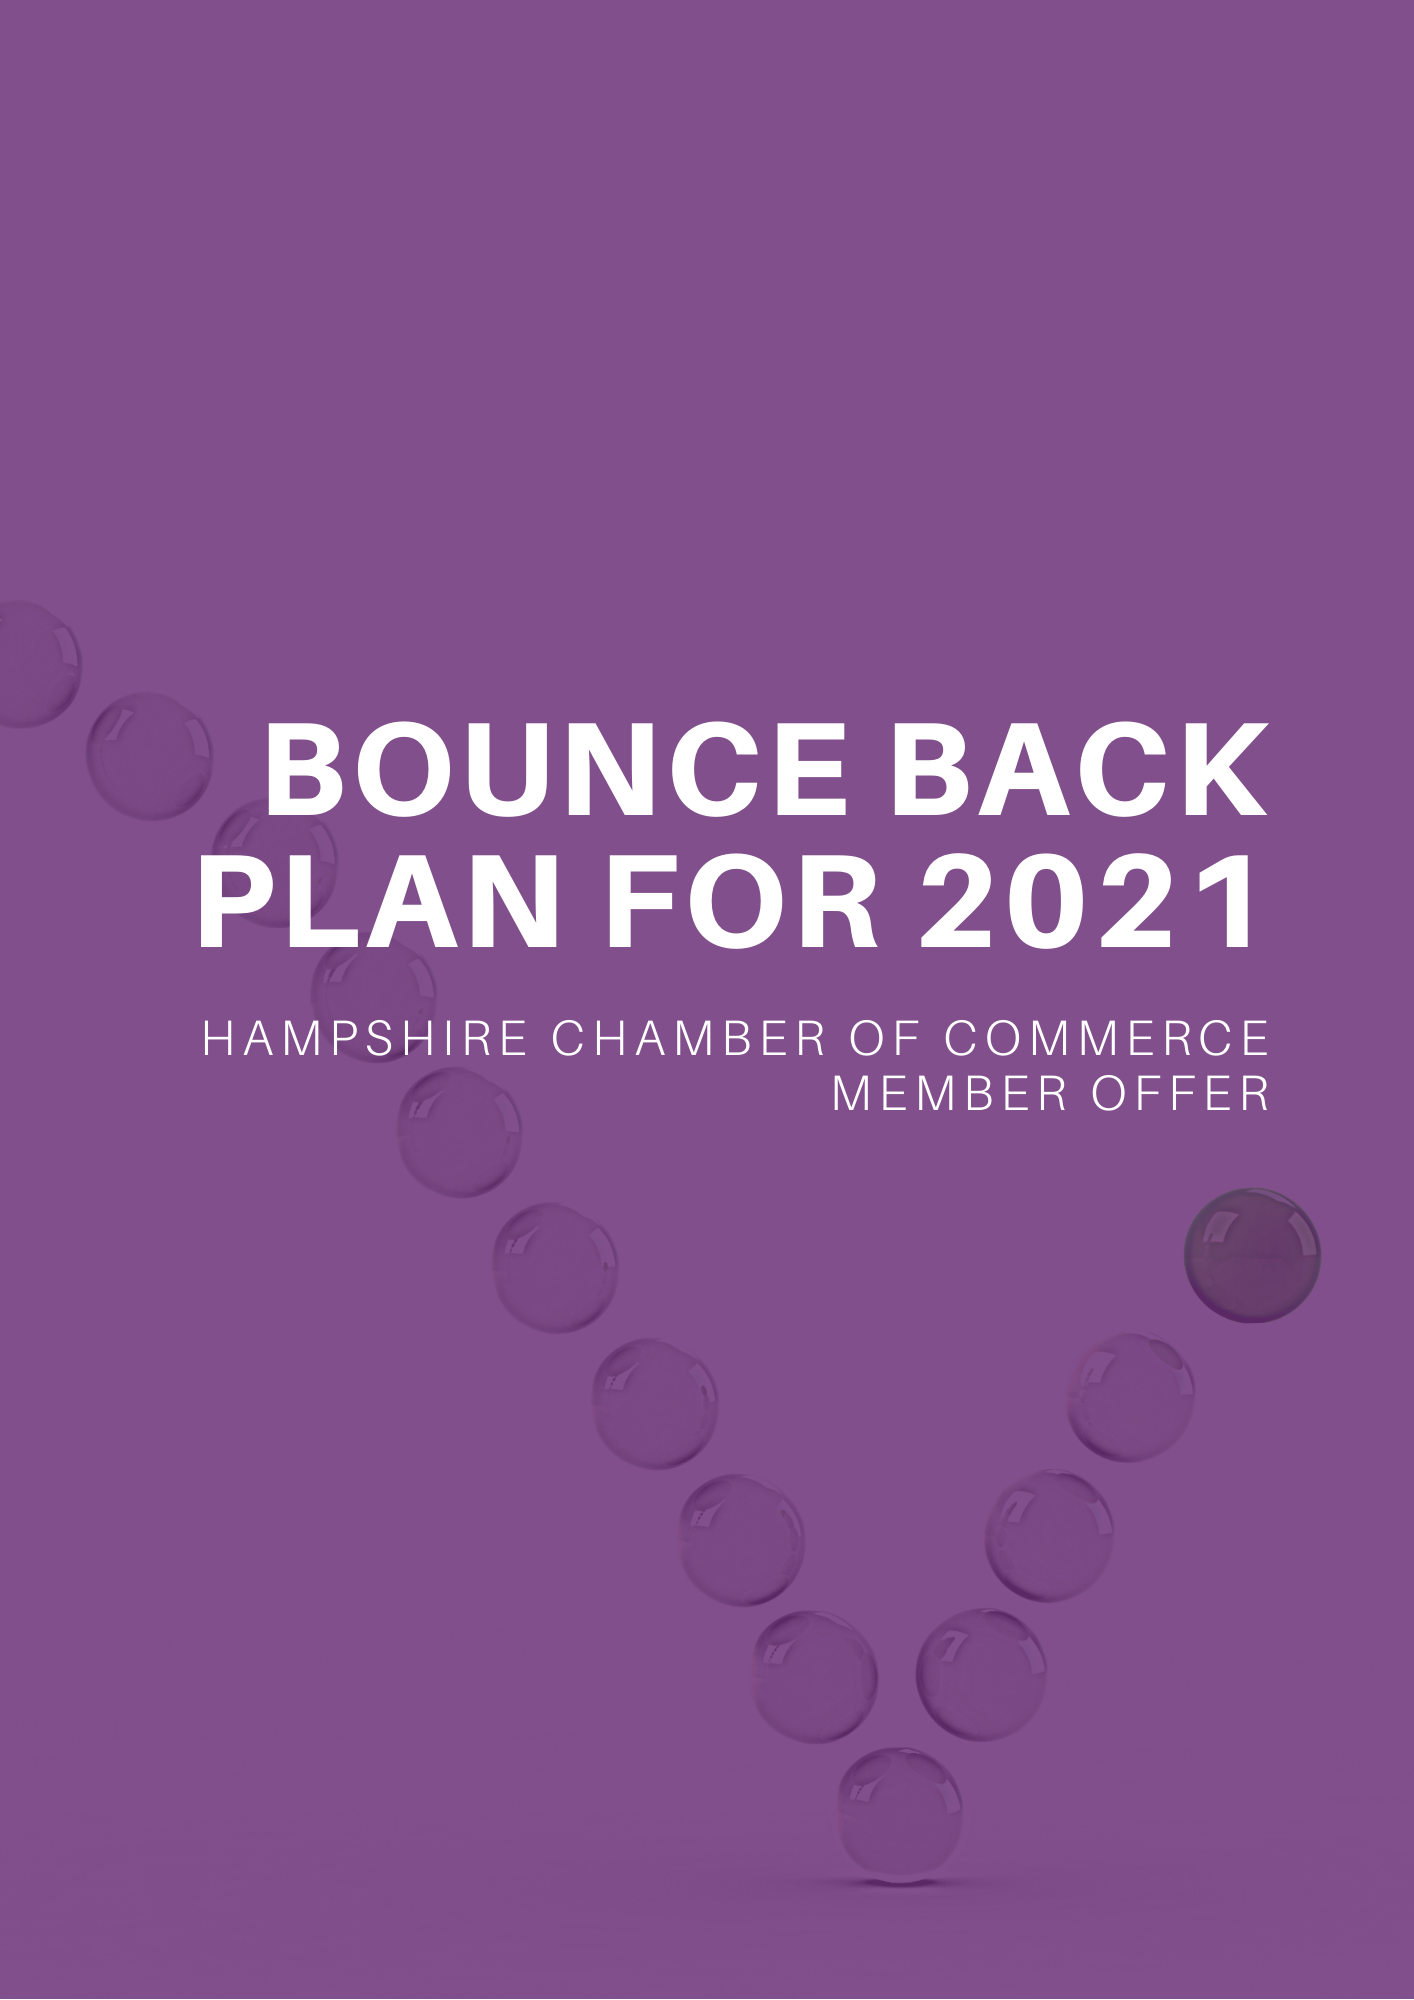 Bounce Back Plan for 2021